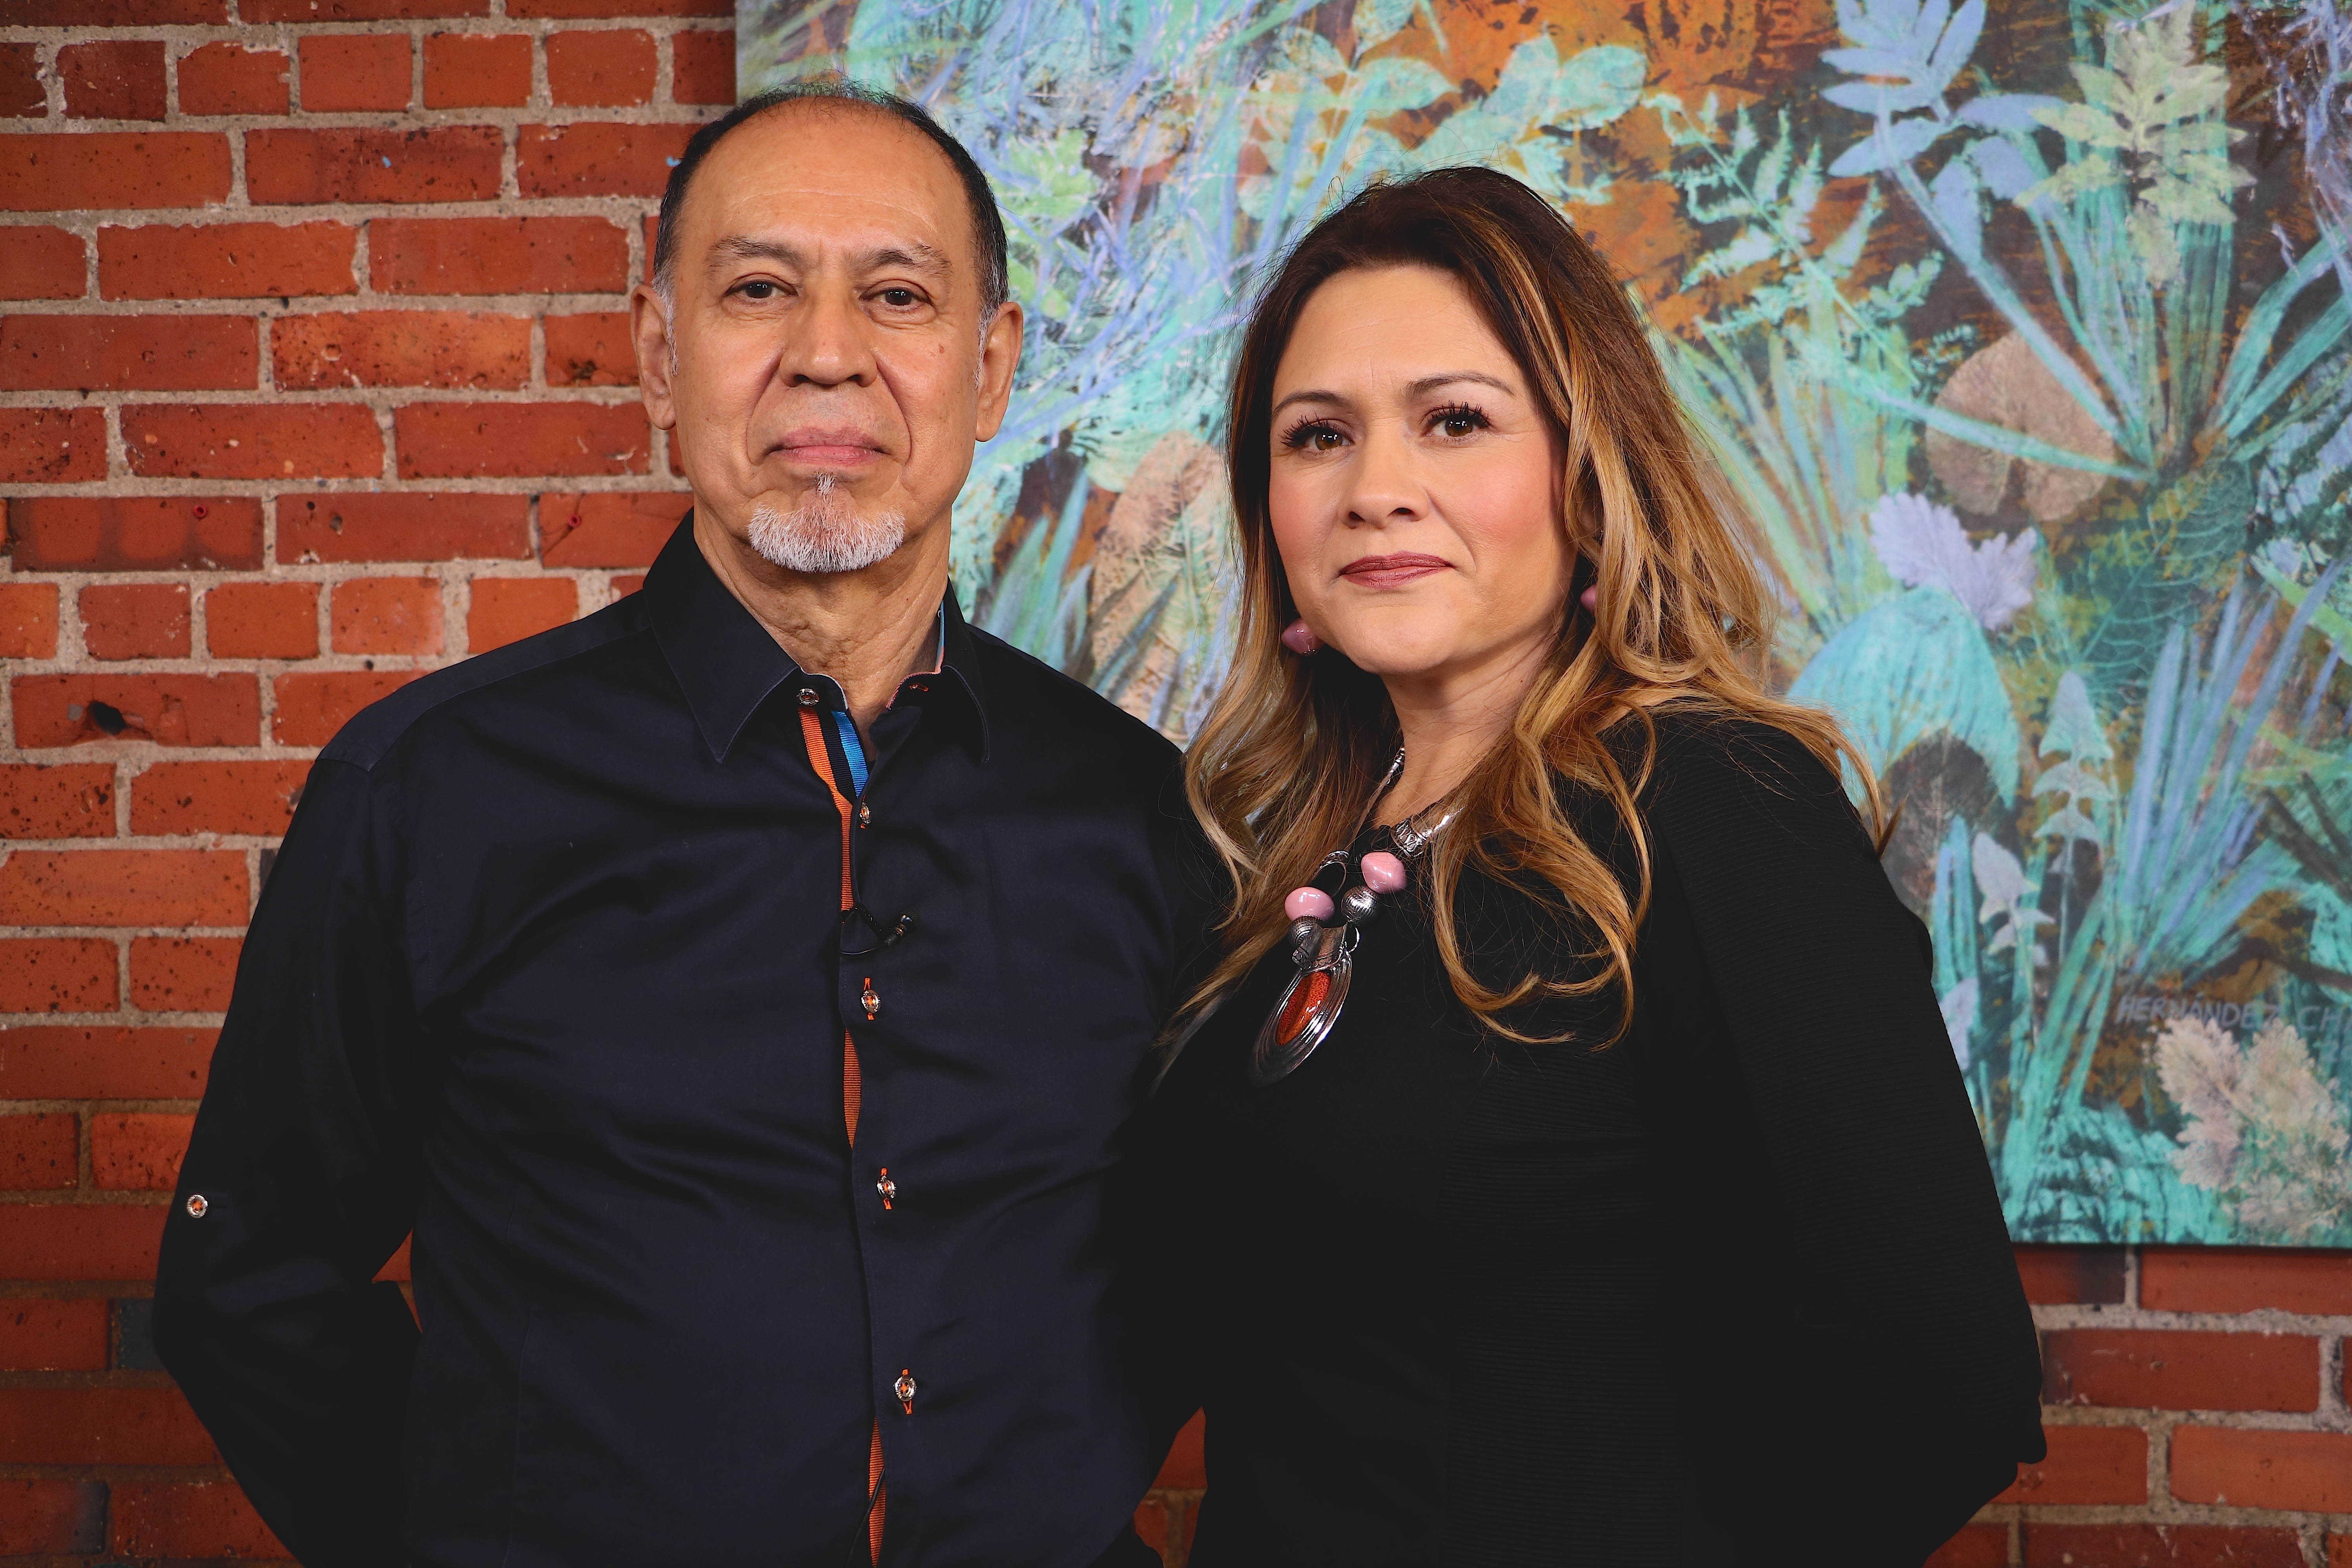 Artist/muralist Carlos Hernández Chávez is a leader in the Hartford arts community. His artwork is on display in private and public across the globe.